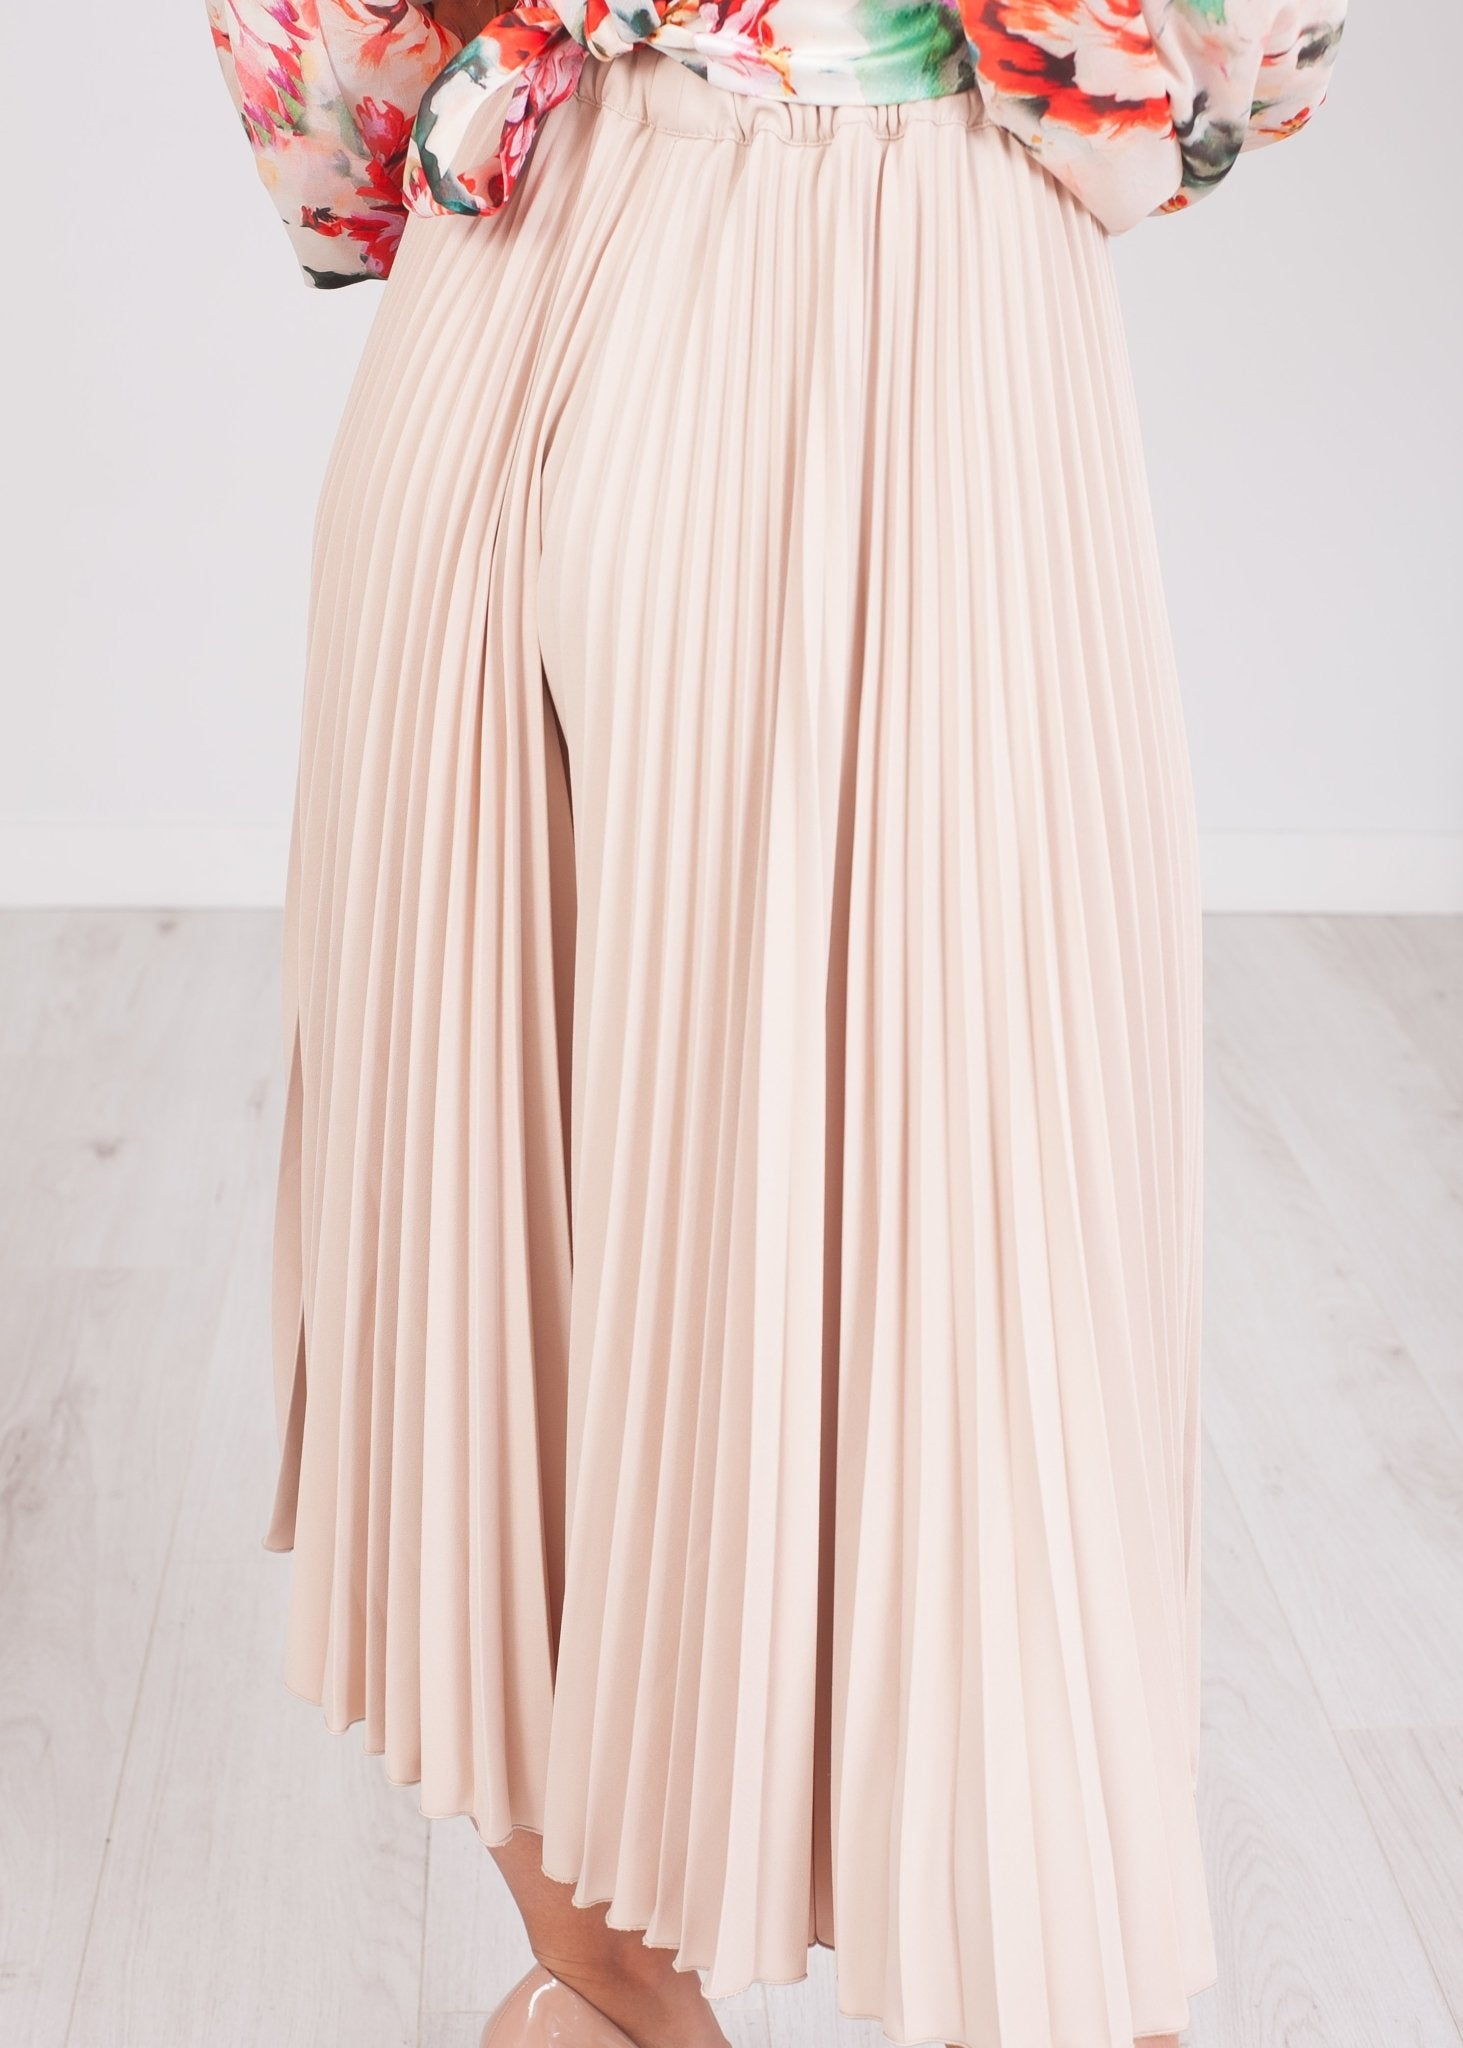 Alana Champagne Pleated Culottes - The Walk in Wardrobe